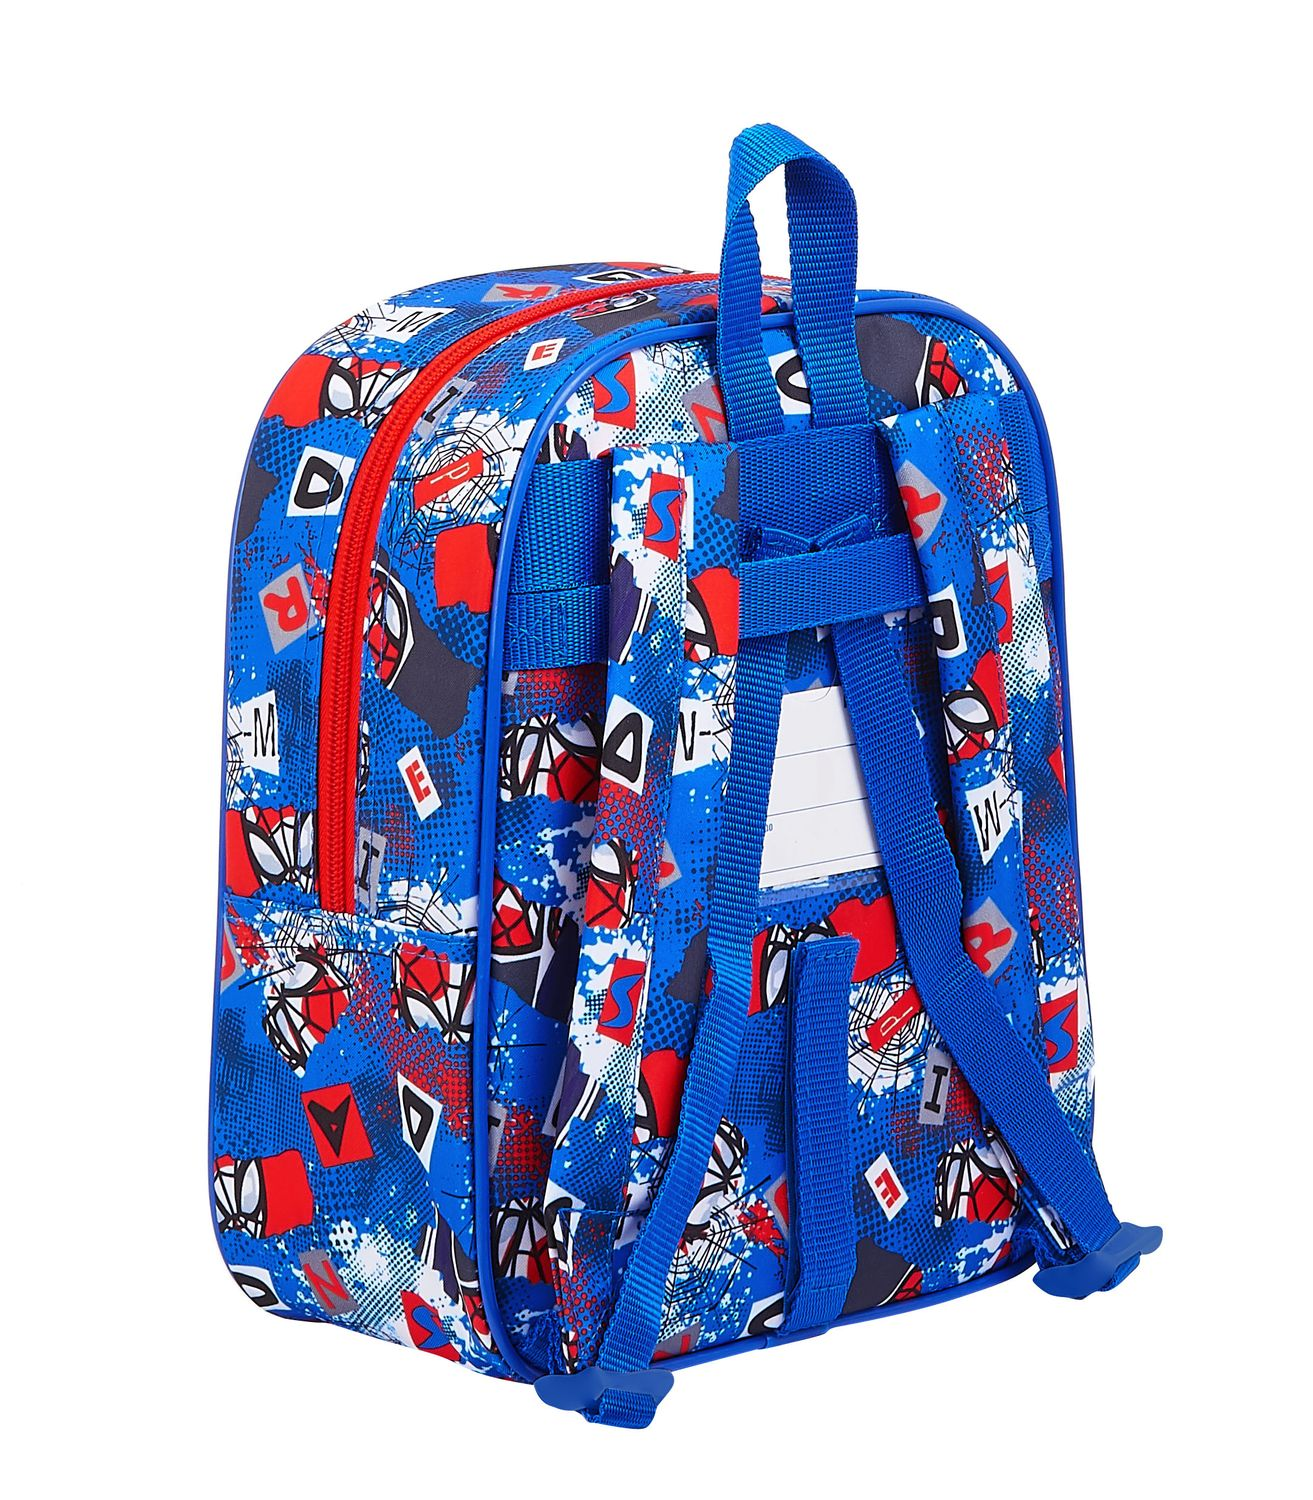 SPIDERMAN PERSPECTIVE Junior Backpack 27cm – image 2